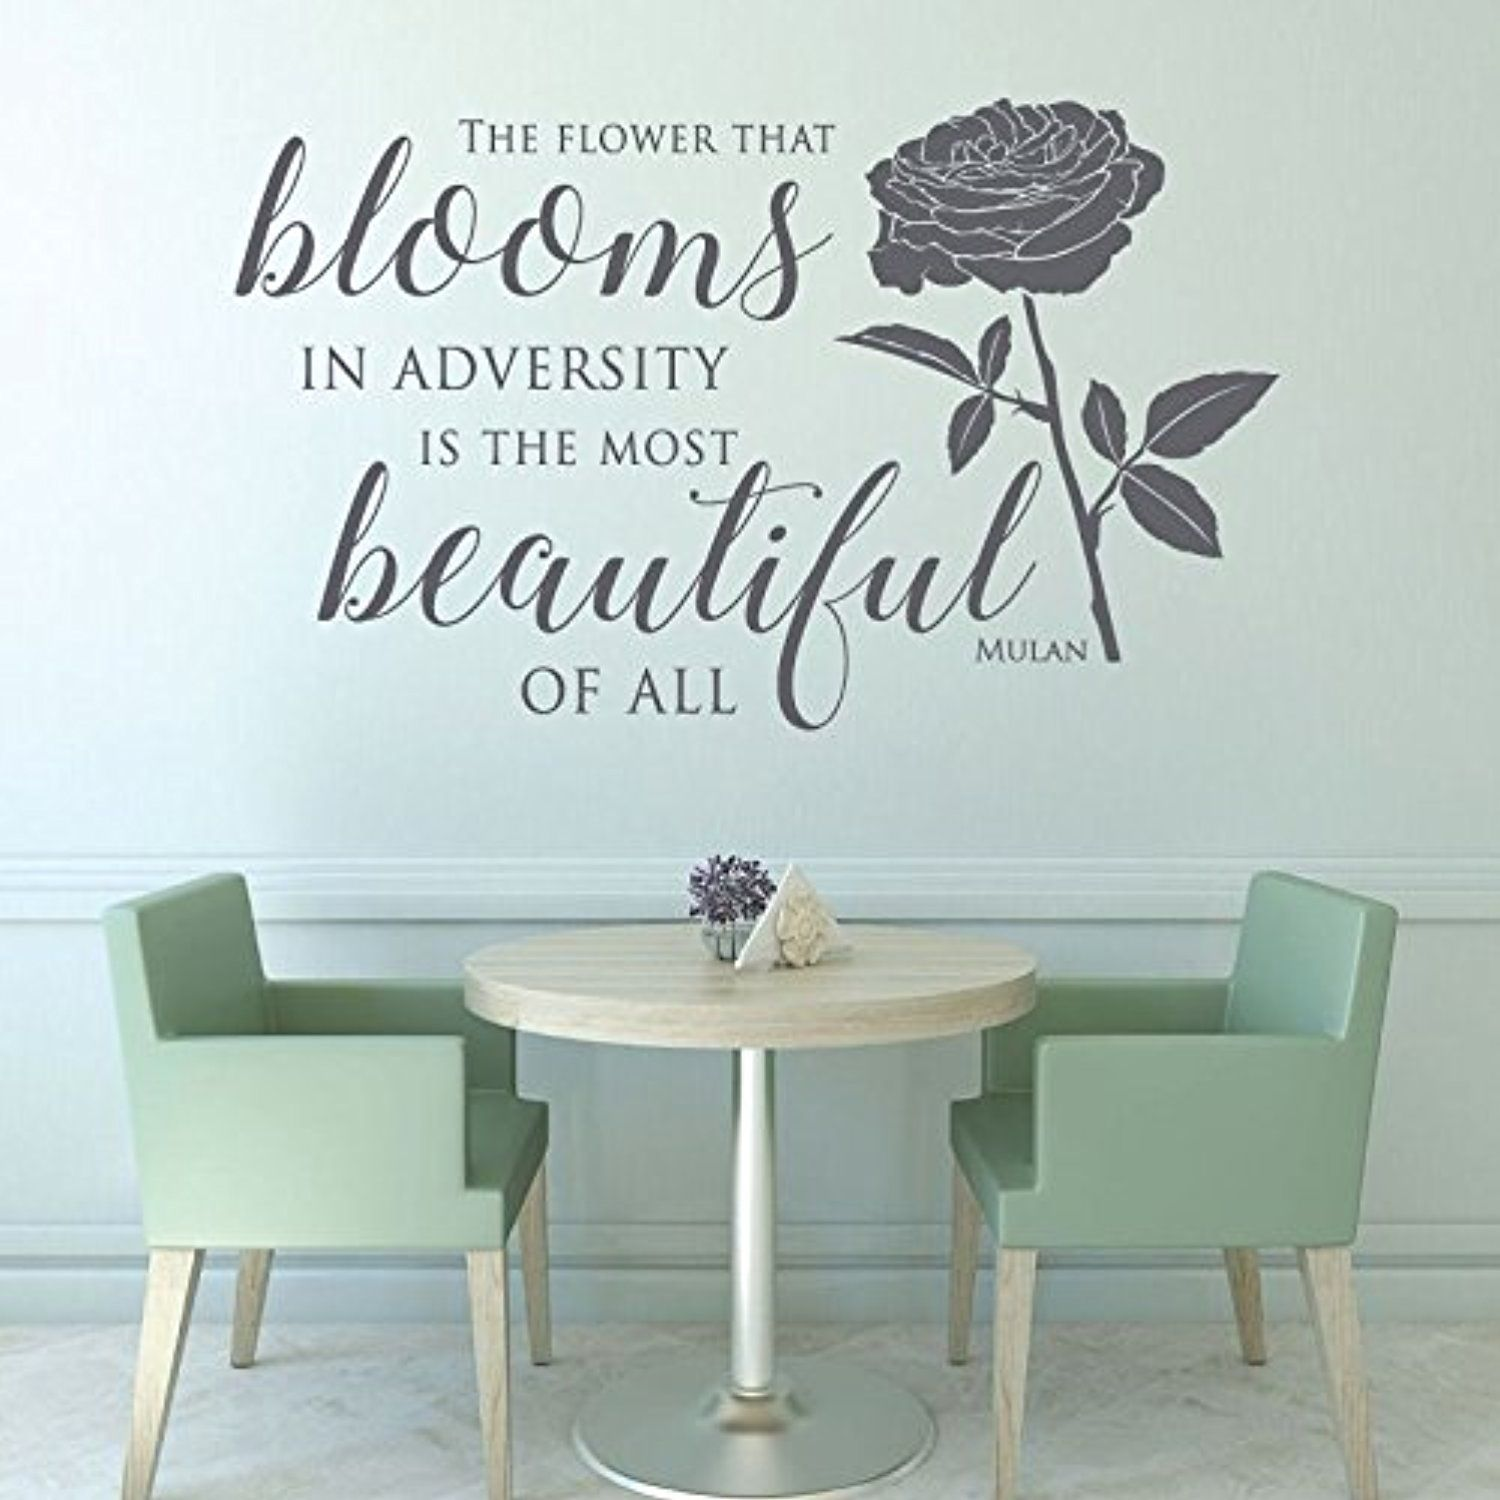 Motivational Quotes Wall Decals Vinyl Wall Art Decor For The Living Room Disney Quotes Master Bedroom Wall Decor Quotes Master Bedroom Wall Art Vinyl Decor #wall #decals #quotes #living #room